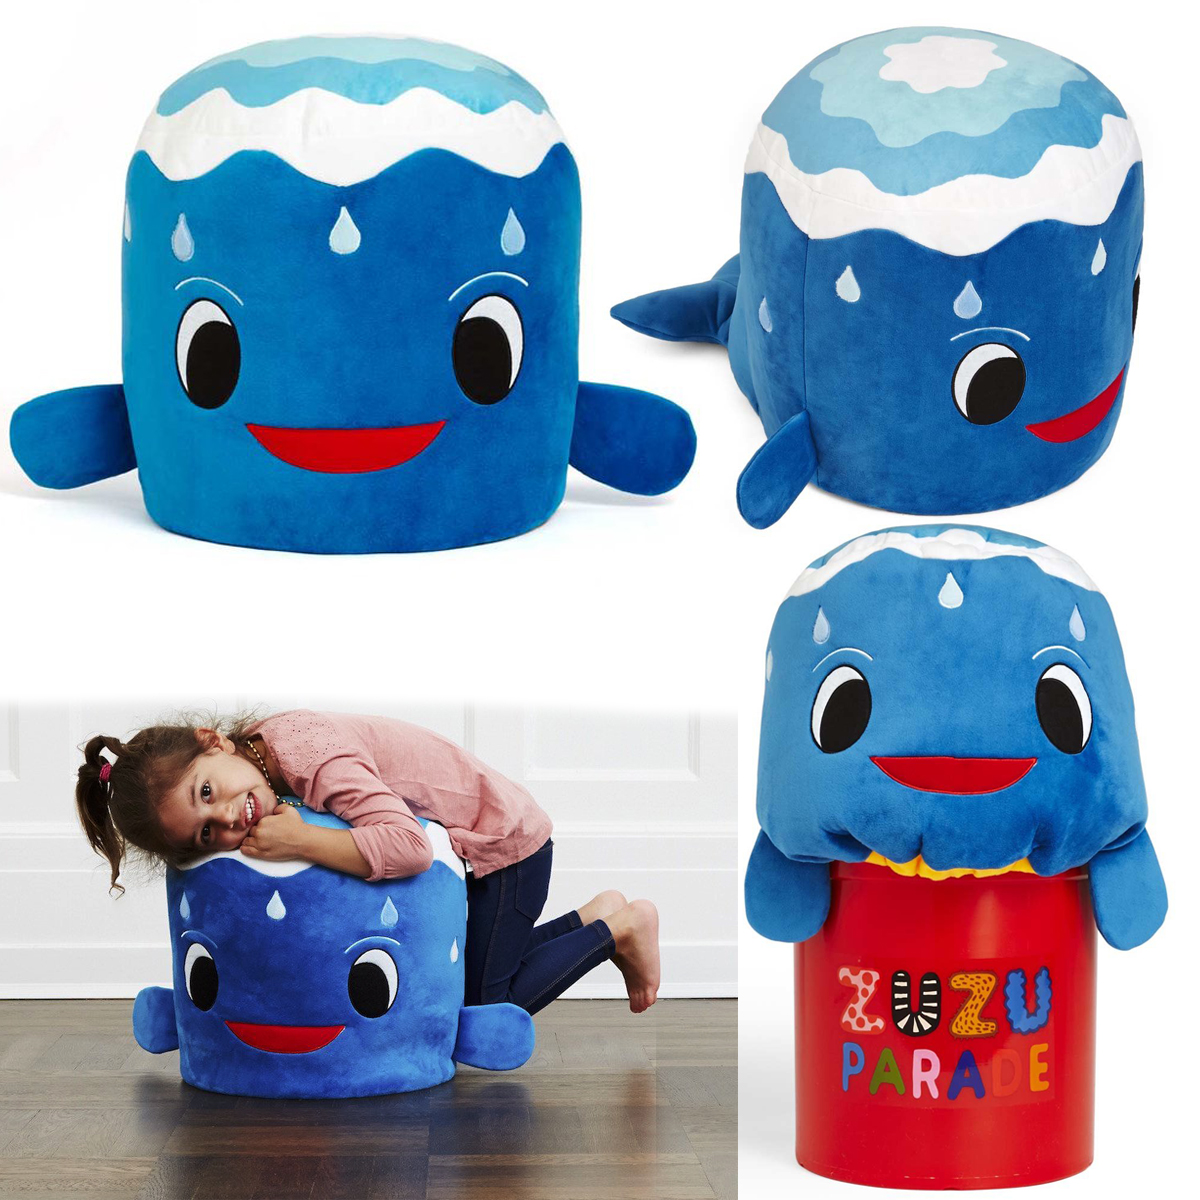 stuffed animal chair how much does a massage cost zuzu parade kids playroom toy storage